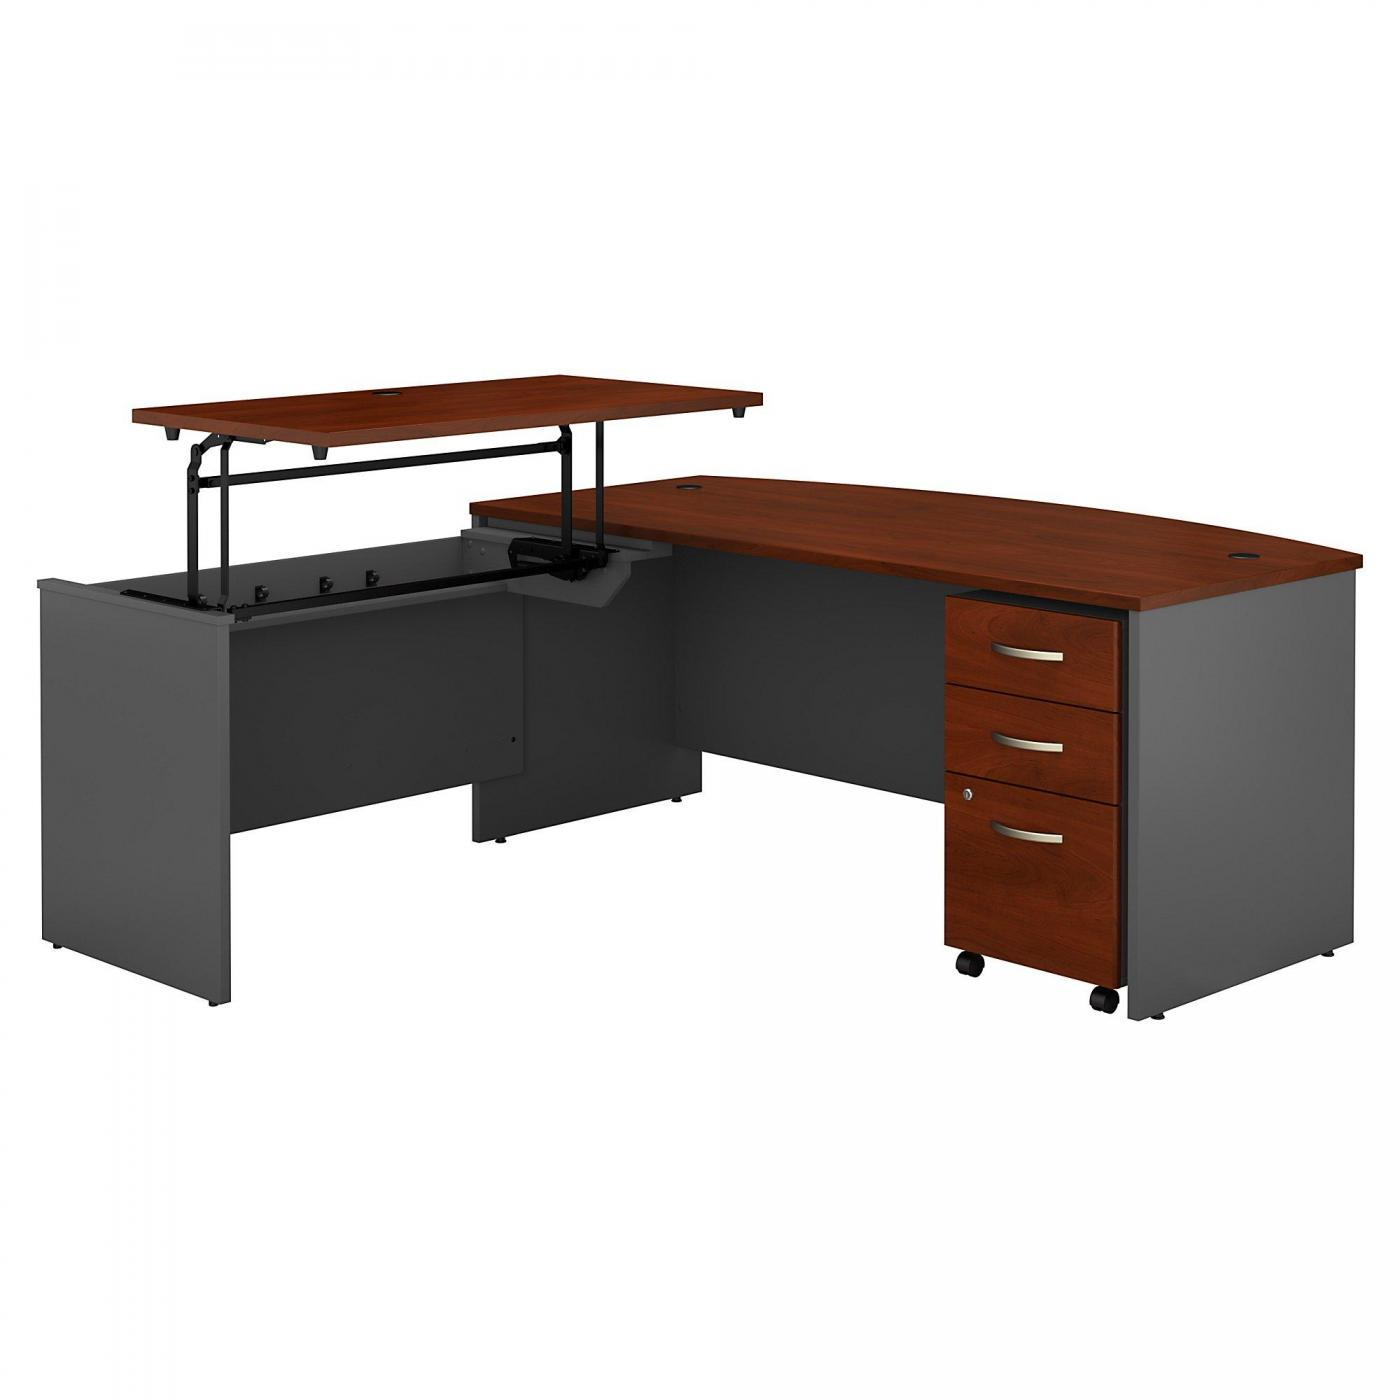 </b></font><b>BUSH BUSINESS FURNITURE SERIES C 72W X 36D 3 POSITION BOW FRONT SIT TO STAND L SHAPED DESK WITH MOBILE FILE CABINET. FREE SHIPPING</b></font>  VIDEO BELOW. <p>RATING:&#11088;&#11088;&#11088;</b></font></b>